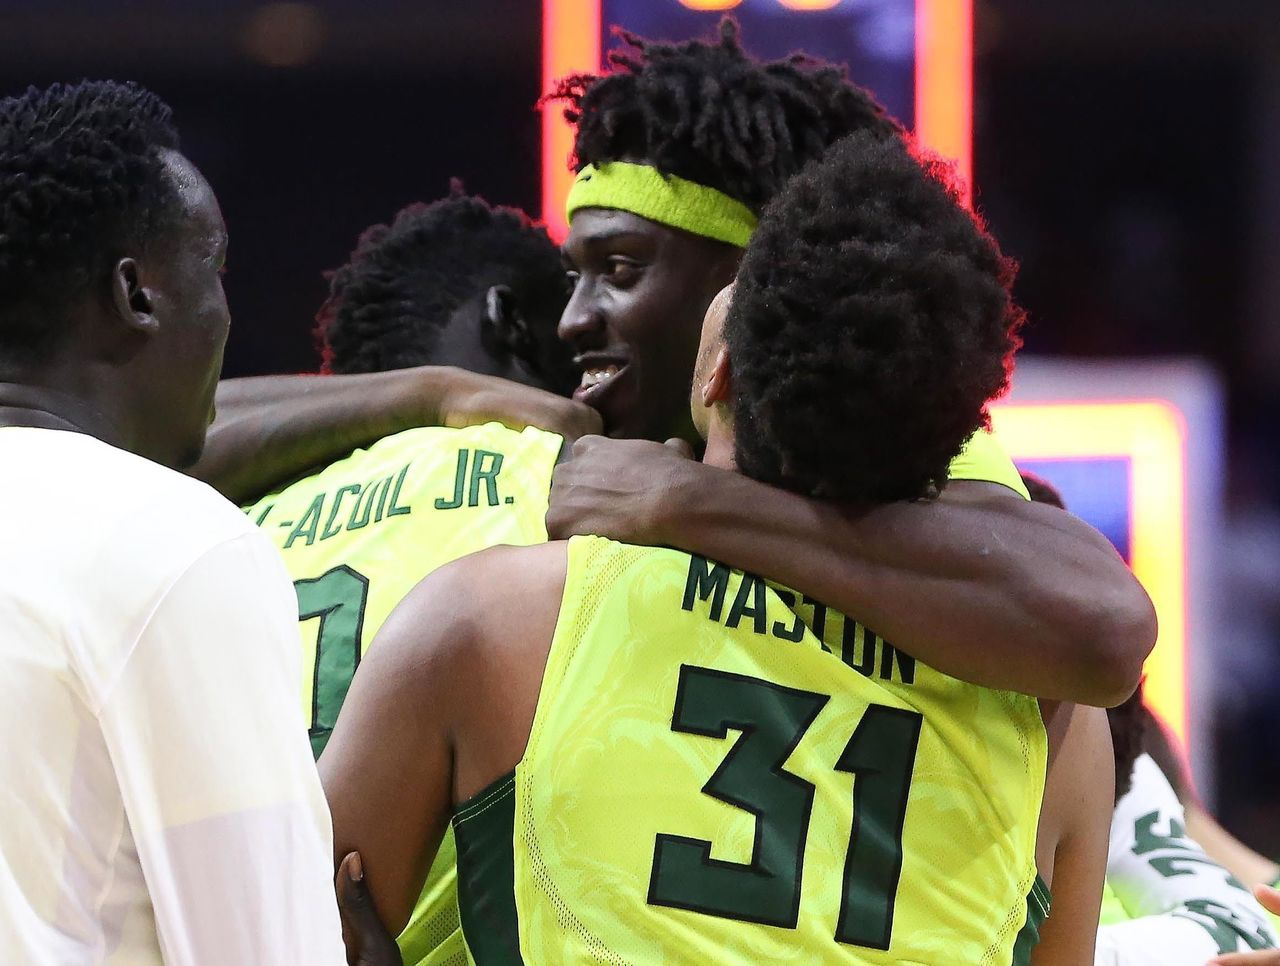 Cropped_2017-03-20t022610z_1594916191_nocid_rtrmadp_3_ncaa-basketball-ncaa-tournament-second-round-baylor-vs-usc